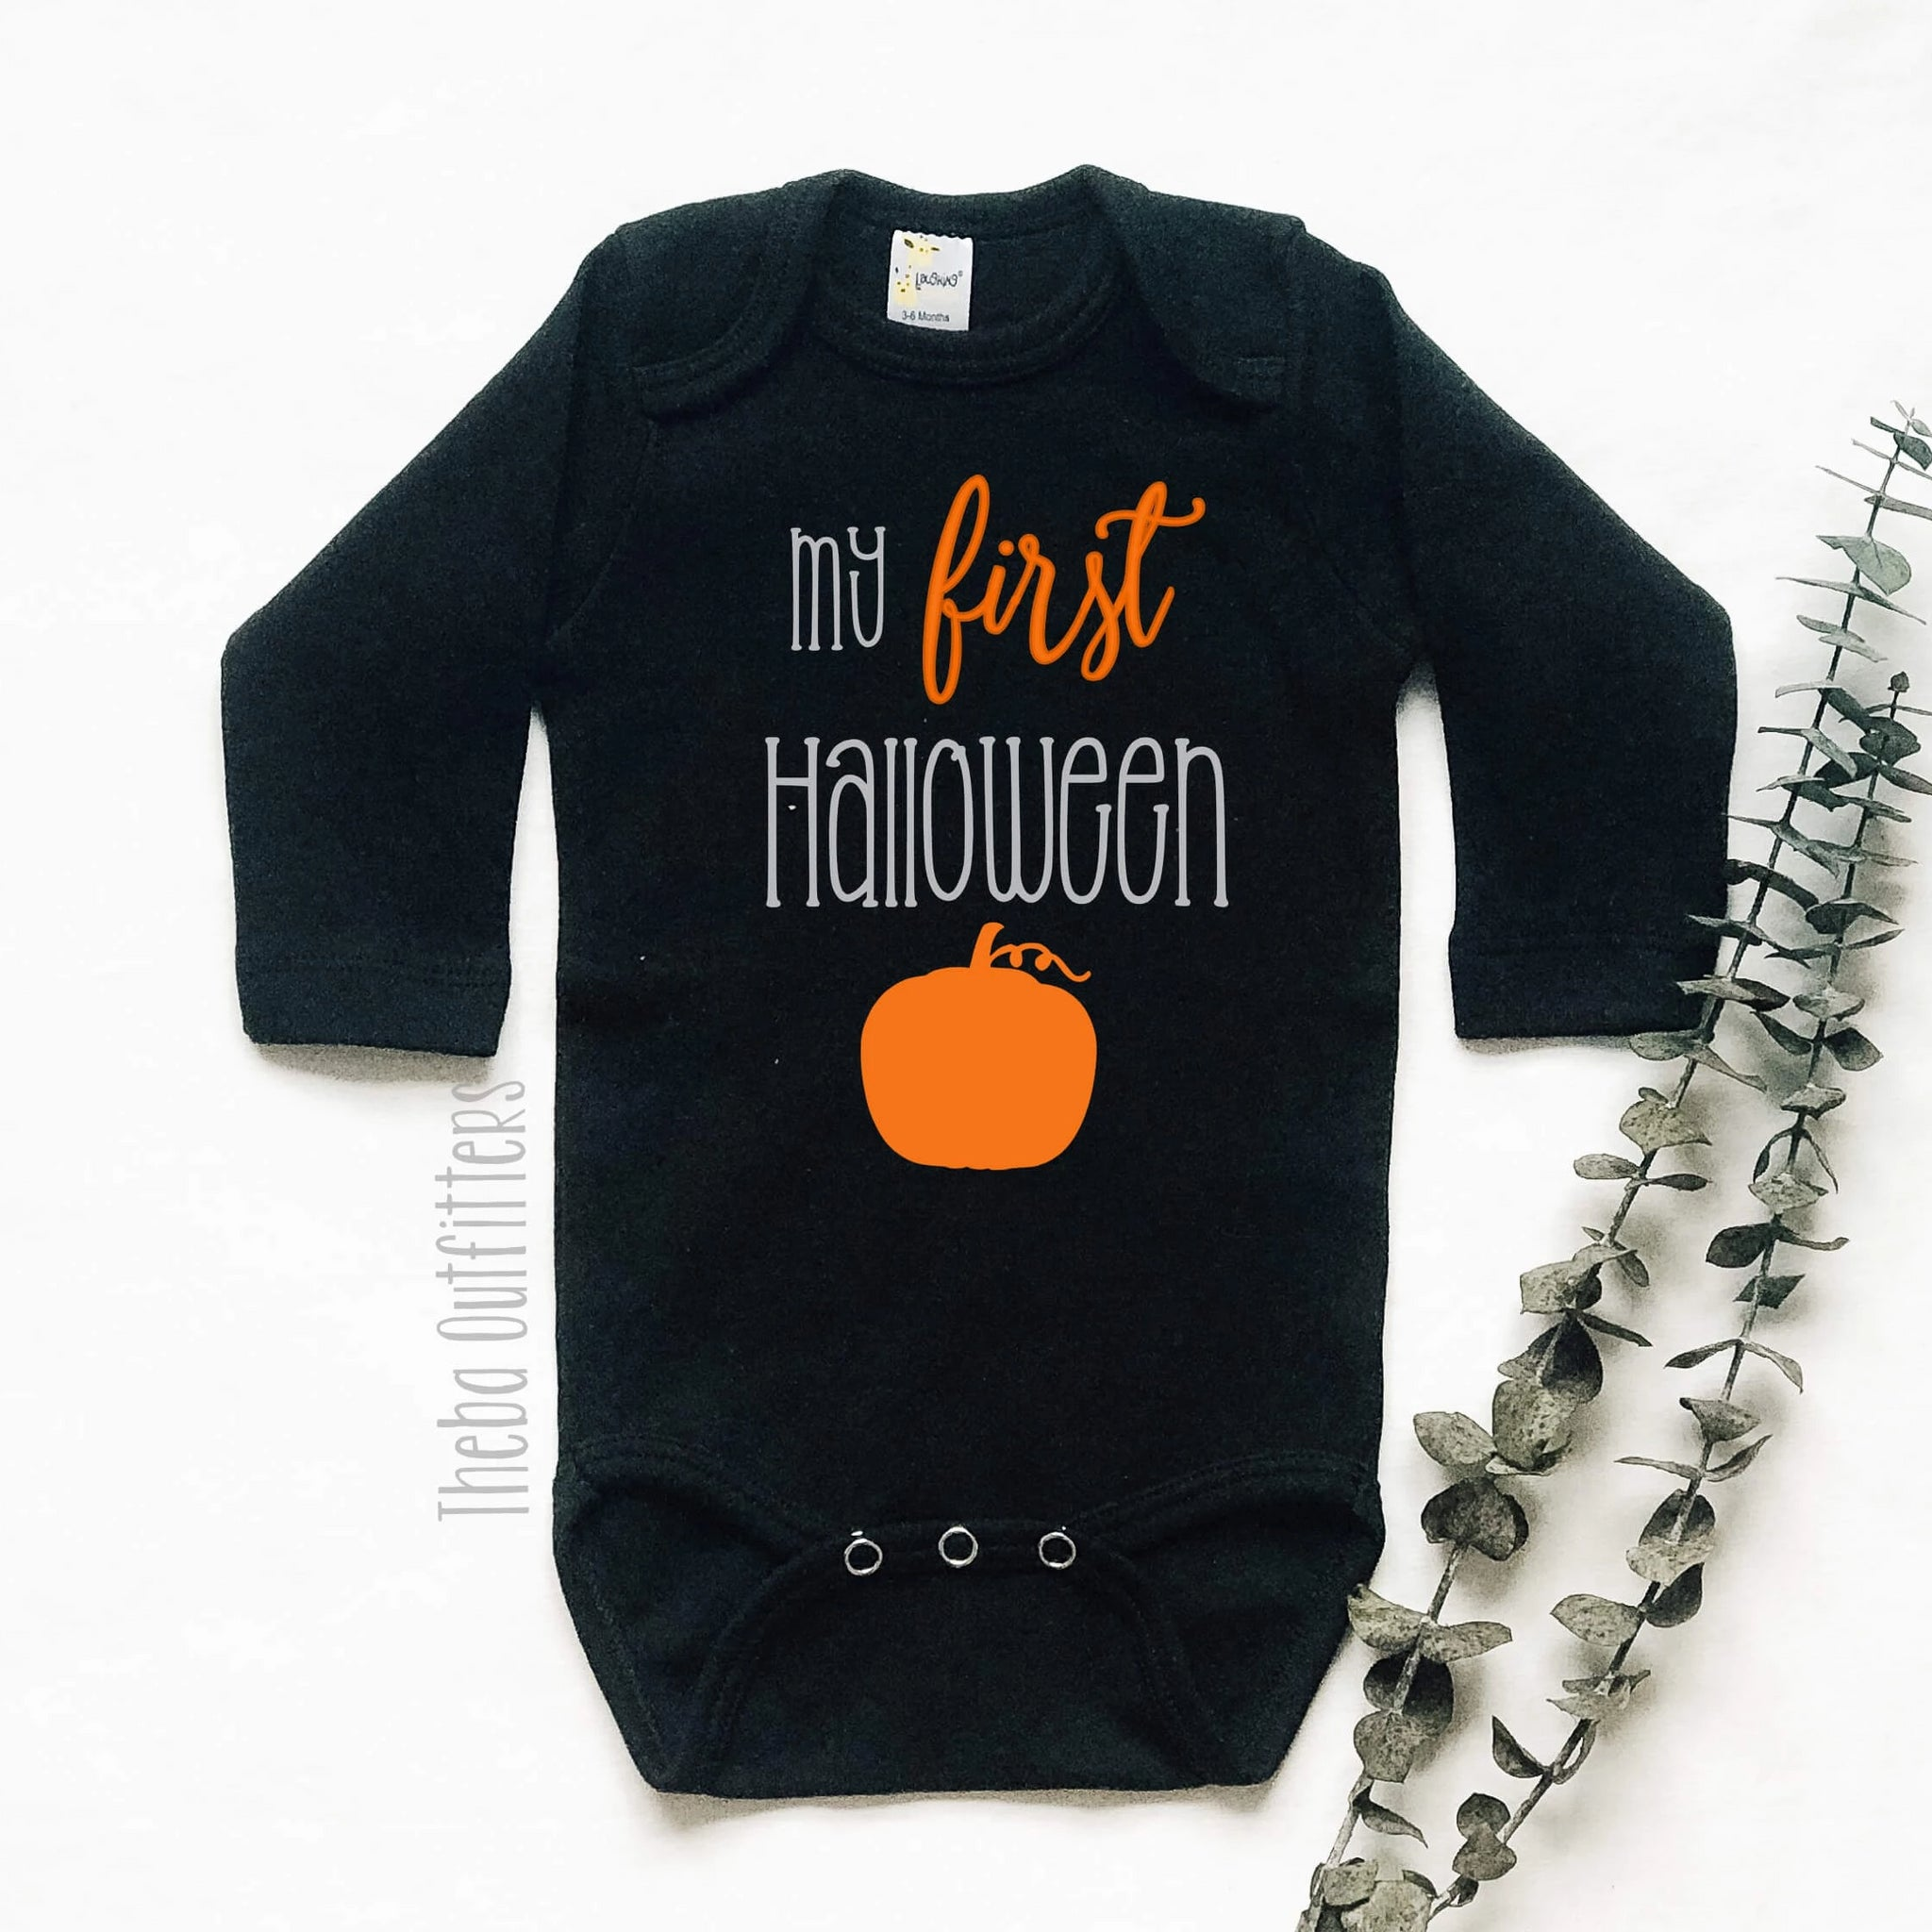 My First Halloween Onesie Tee Shirt Pumpkin Bodysuit Infant Baby Toddler Theba Outfitters